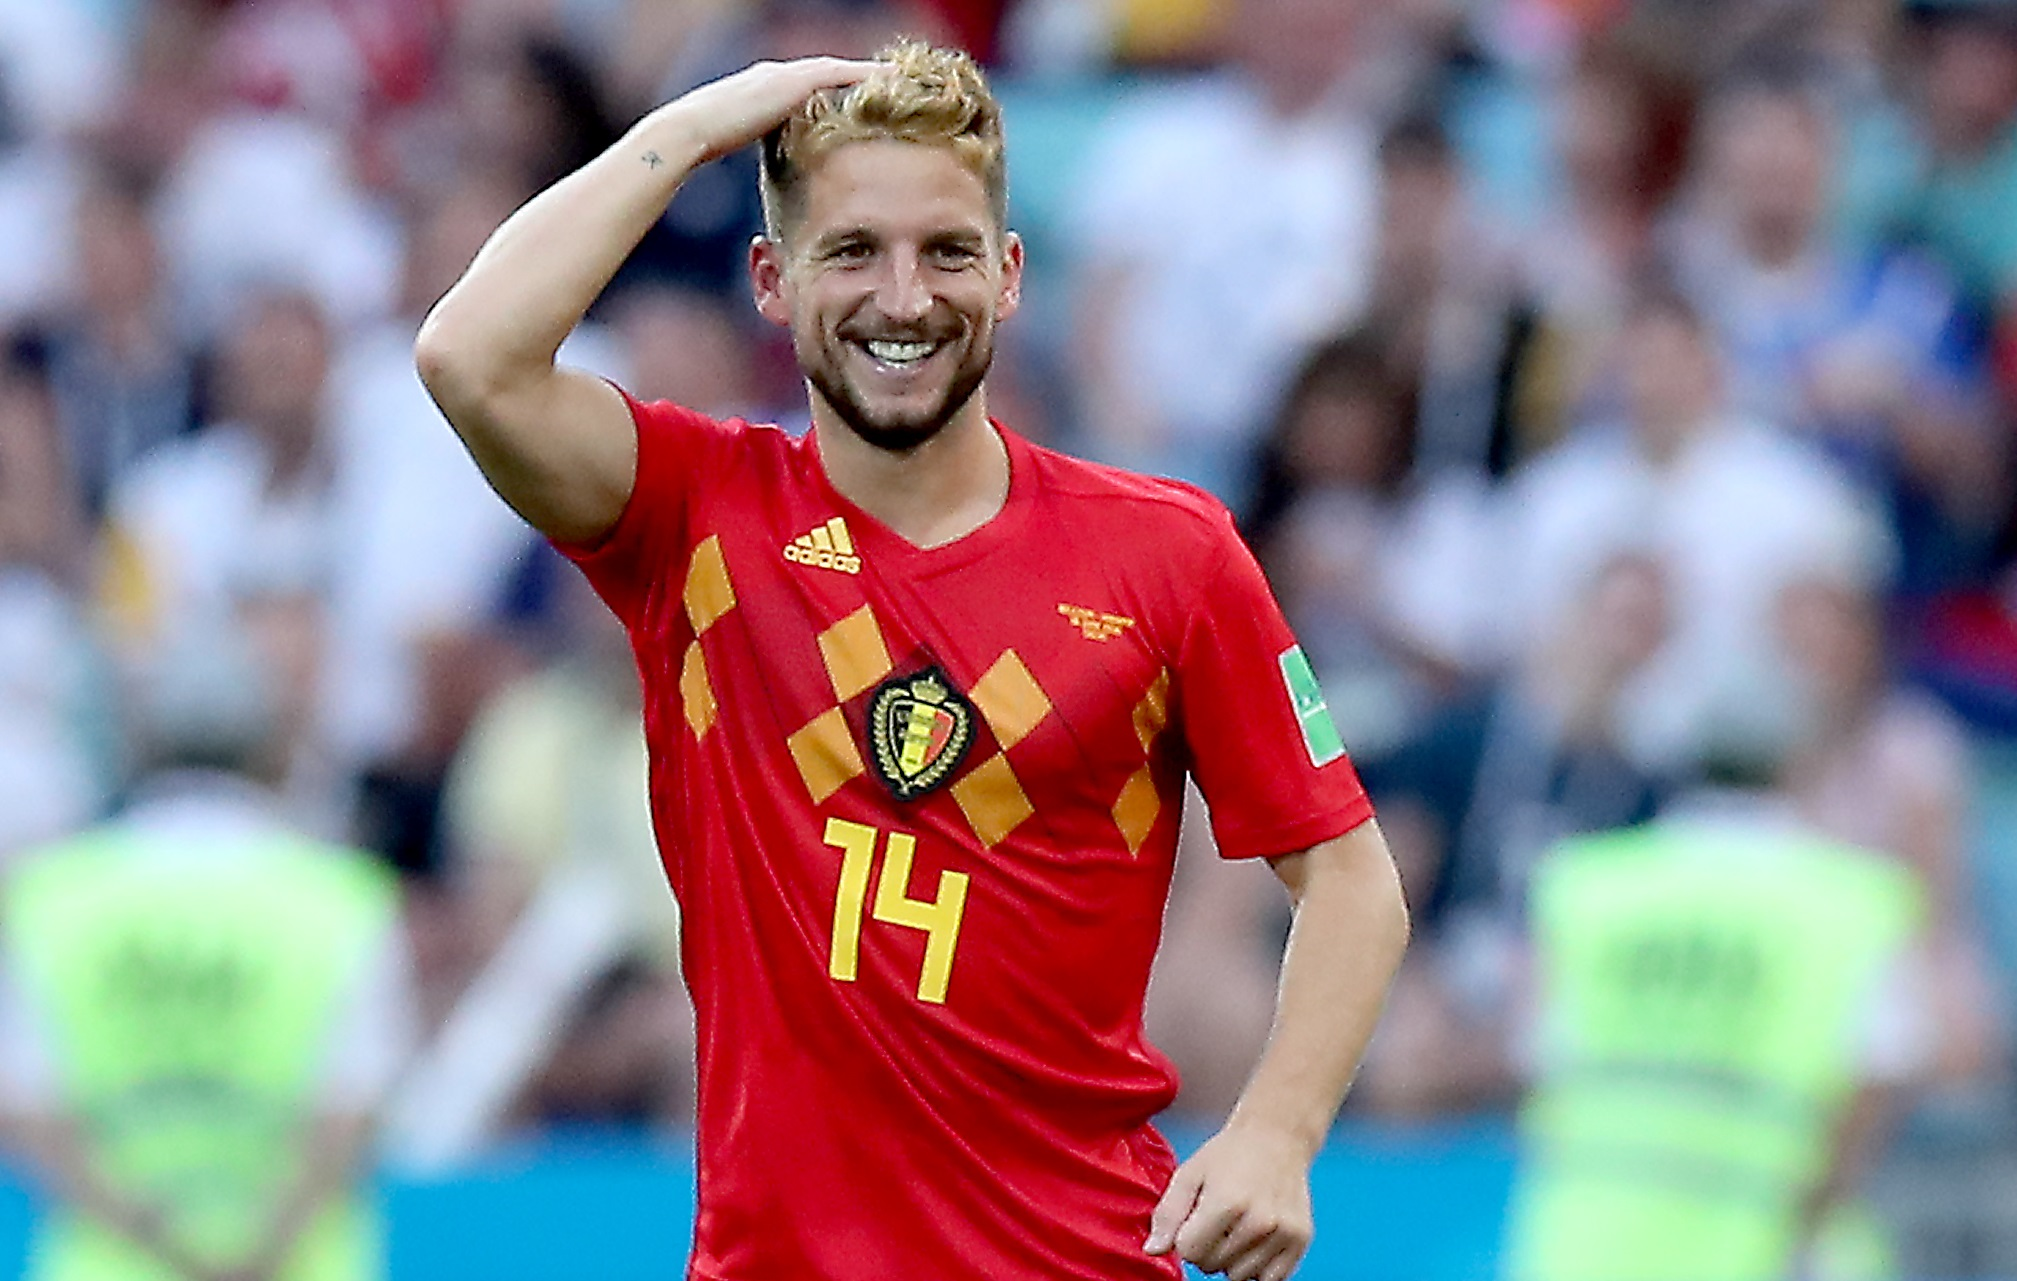 f1649cb3a97 Dries Mertens of Belgium reacts after scoring during the FIFA World Cup 2018  group G preliminary round soccer match between Belgium and Panama in Sochi